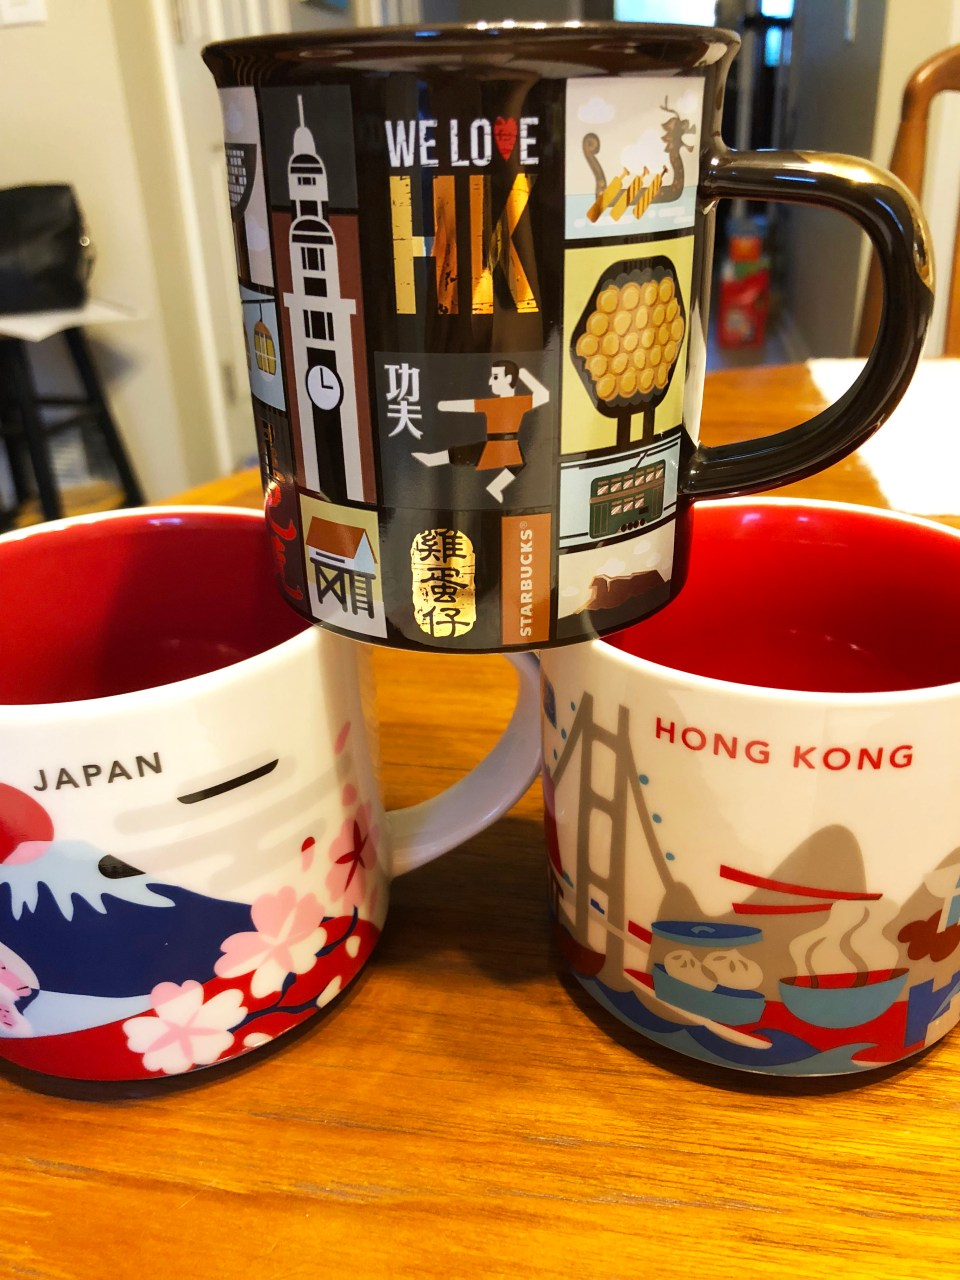 Japan & Hong Kong Starbucks Mugs